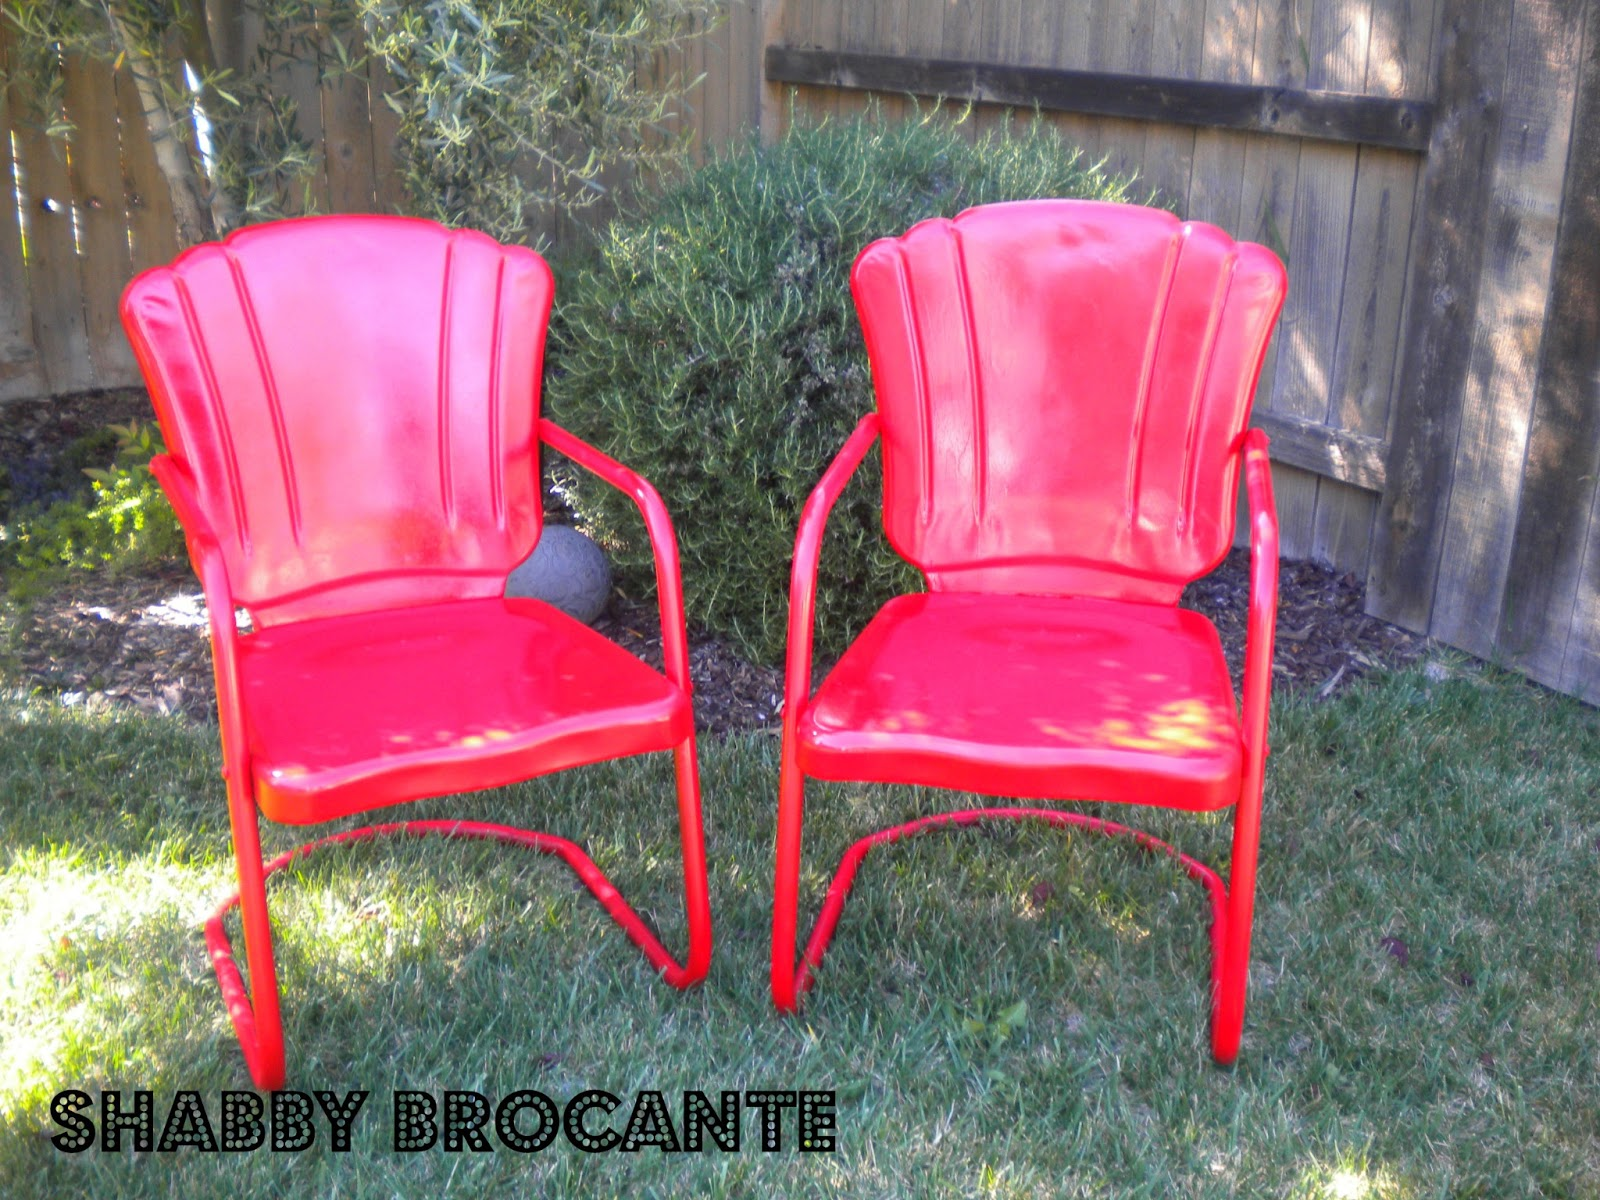 Shabby brocante vintage metal lawn chairs Vintage metal garden furniture